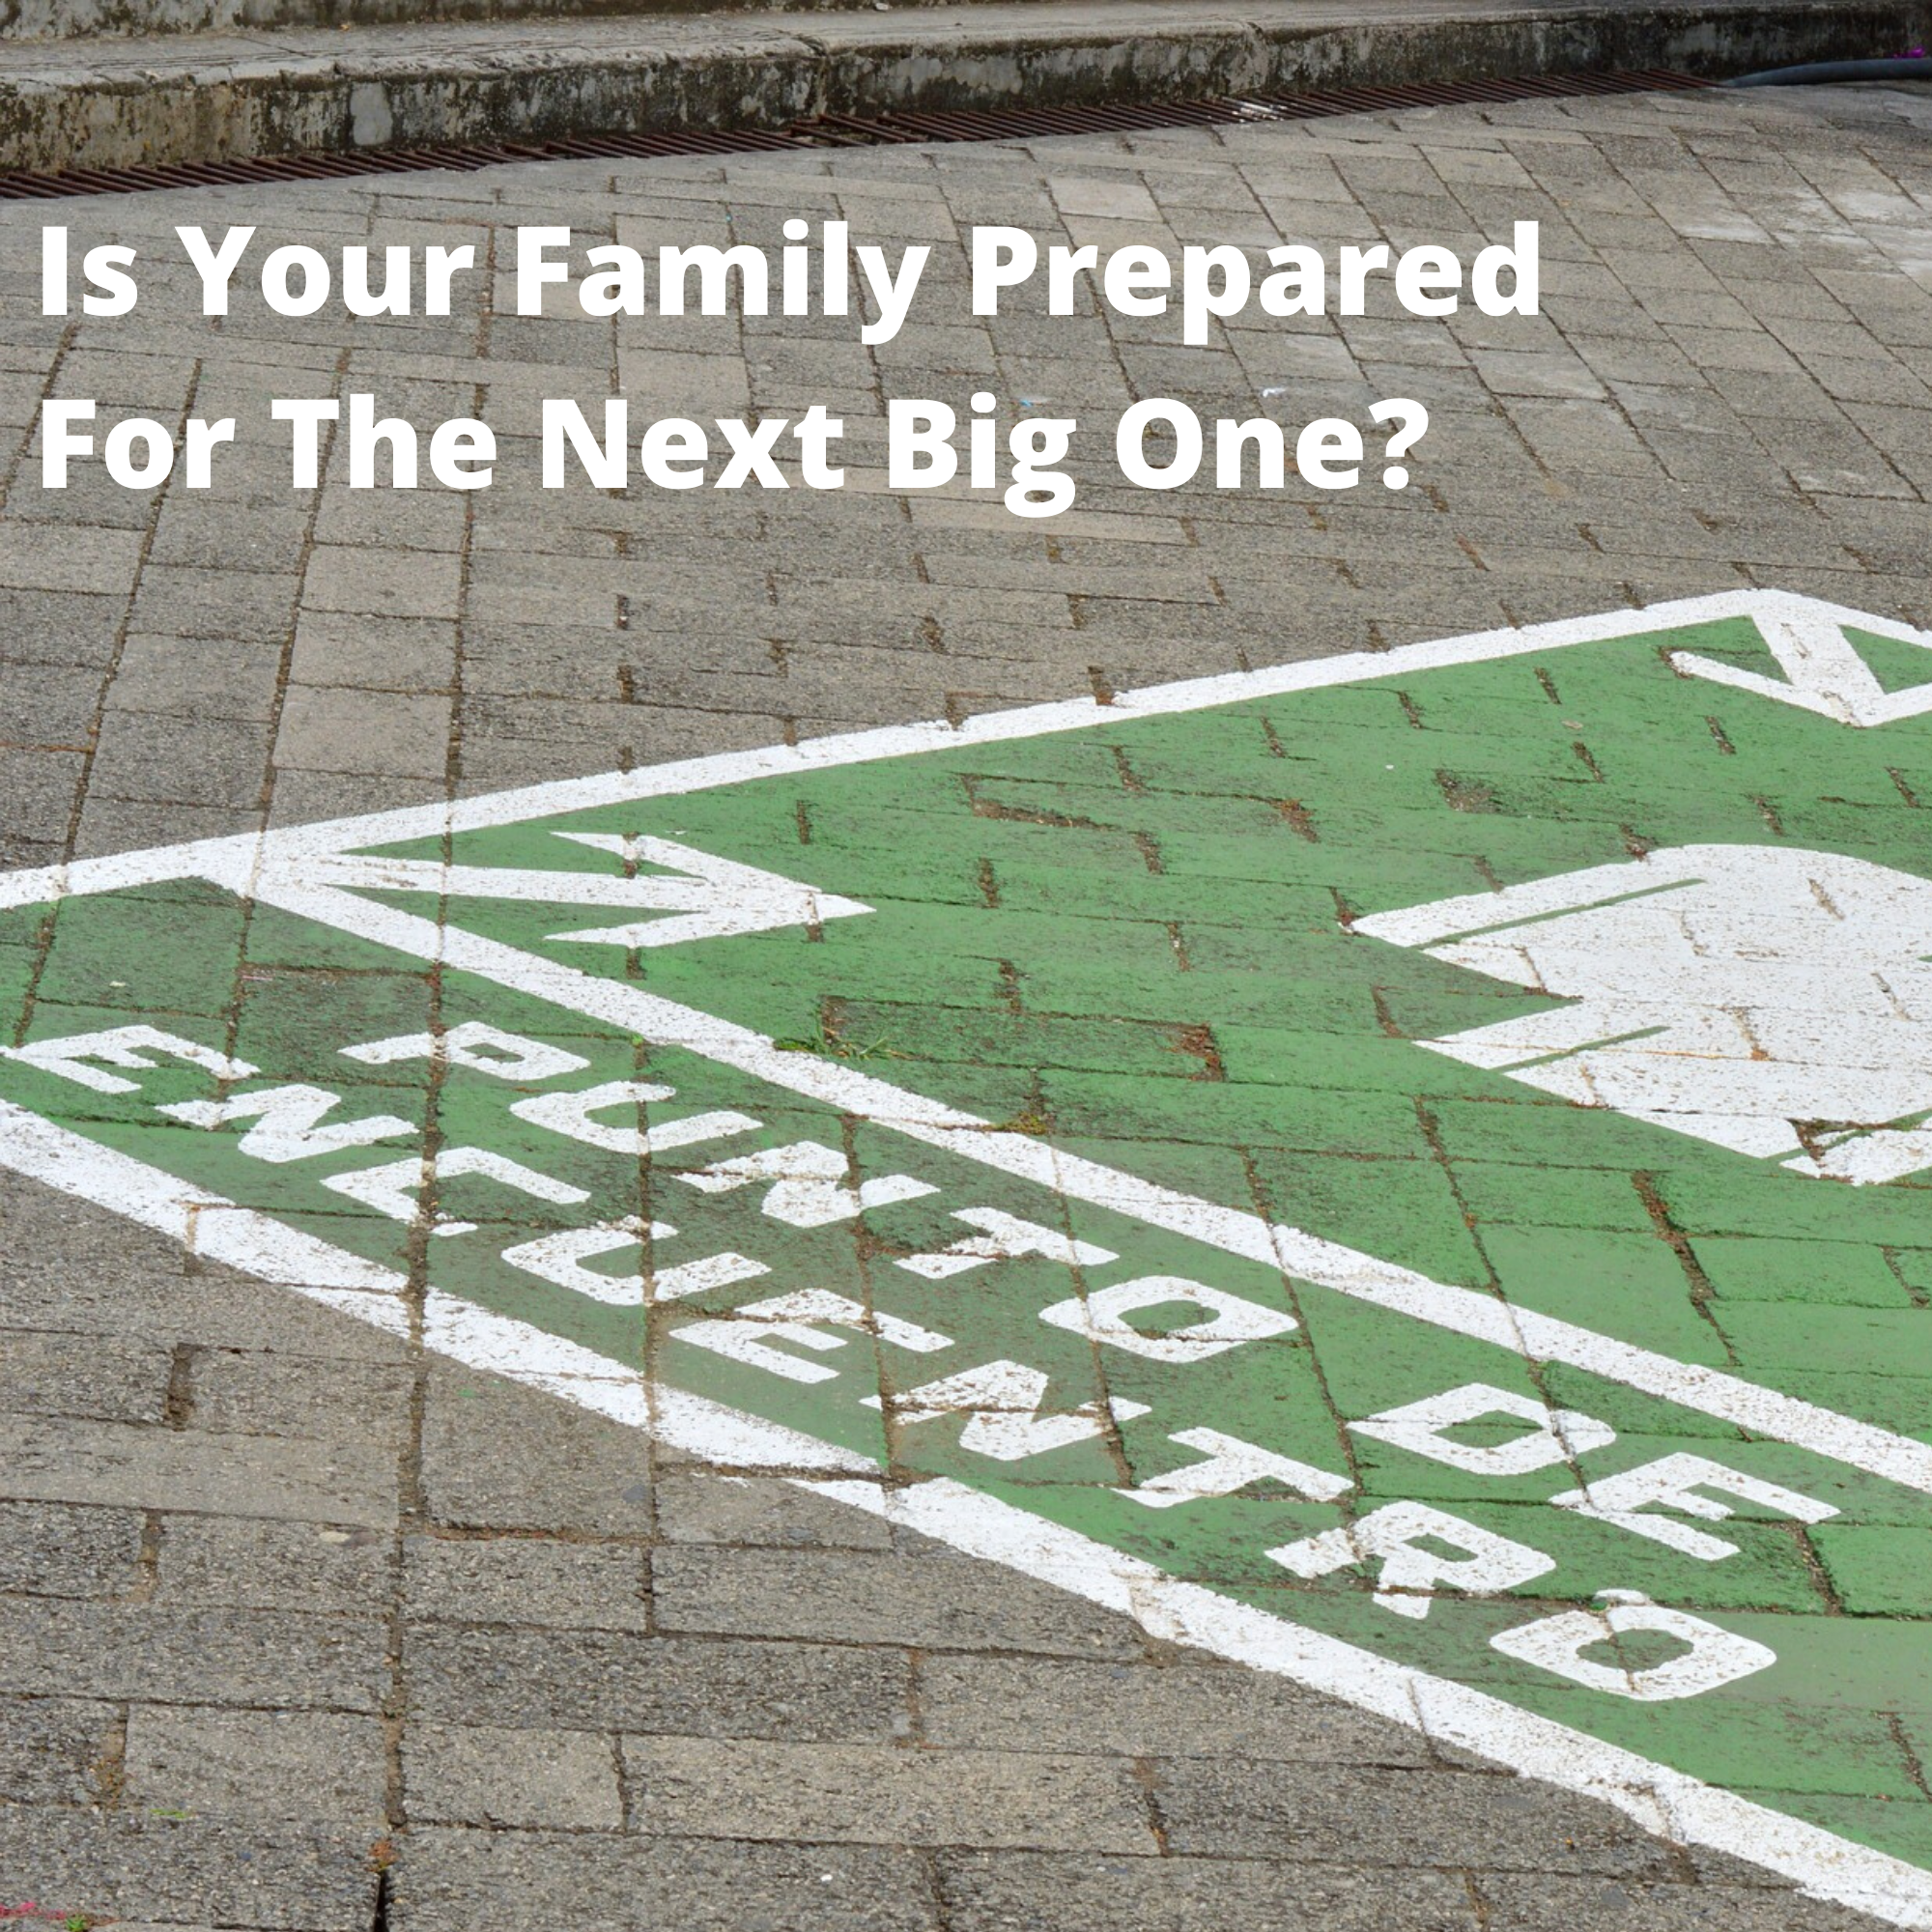 Is Your Family Prepared For The Next Big One?